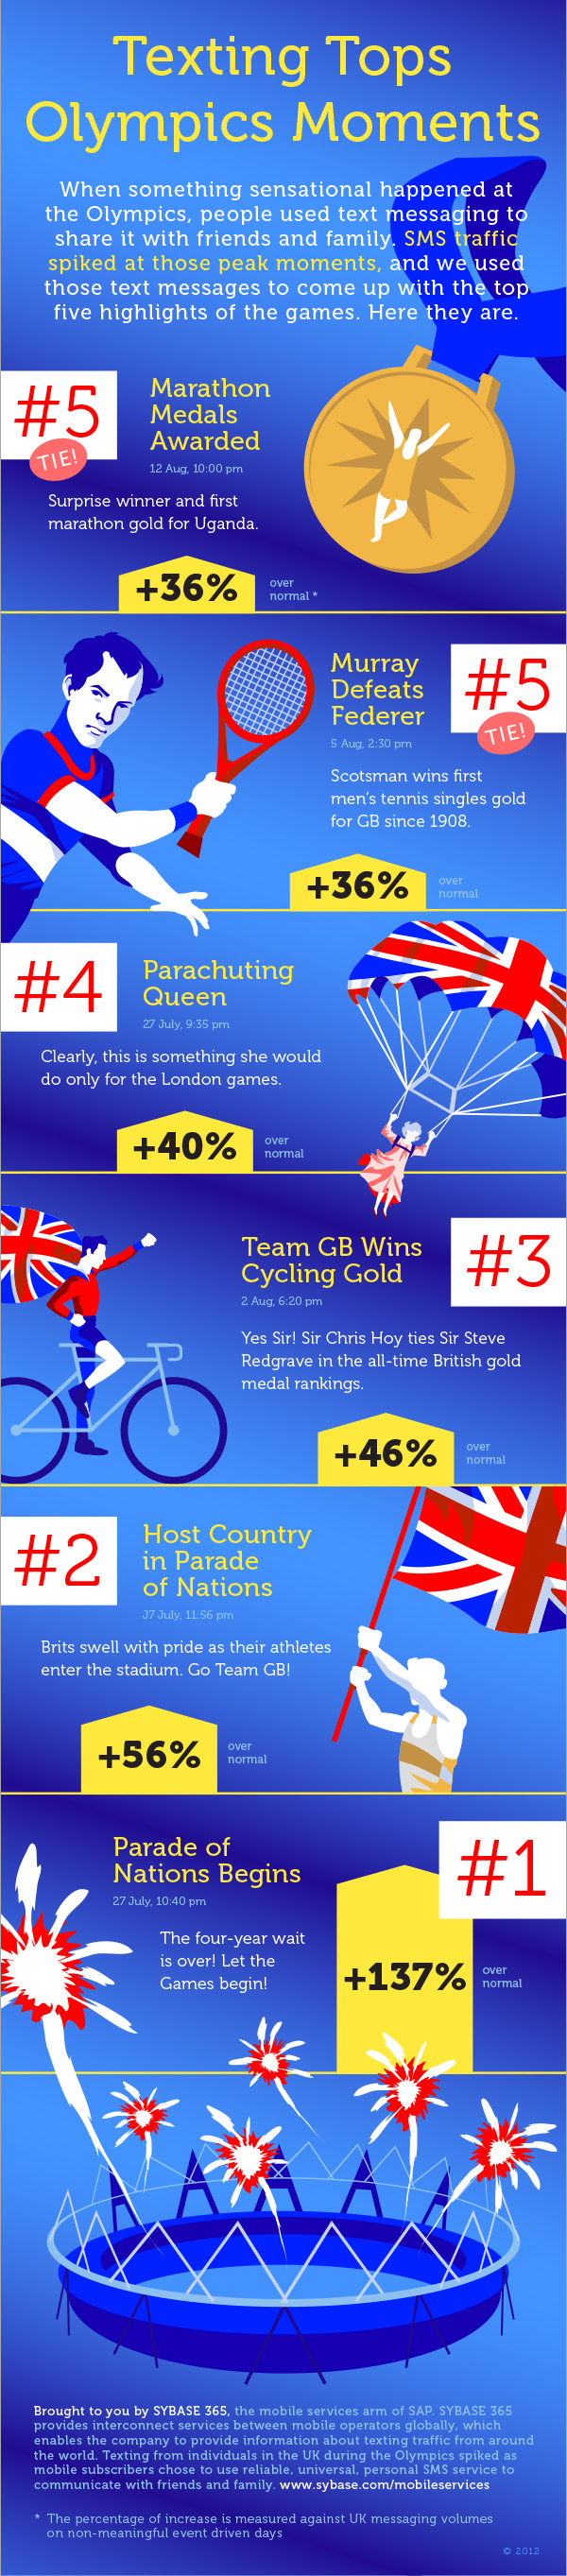 Six Most Texted Olympic 2012 Moments